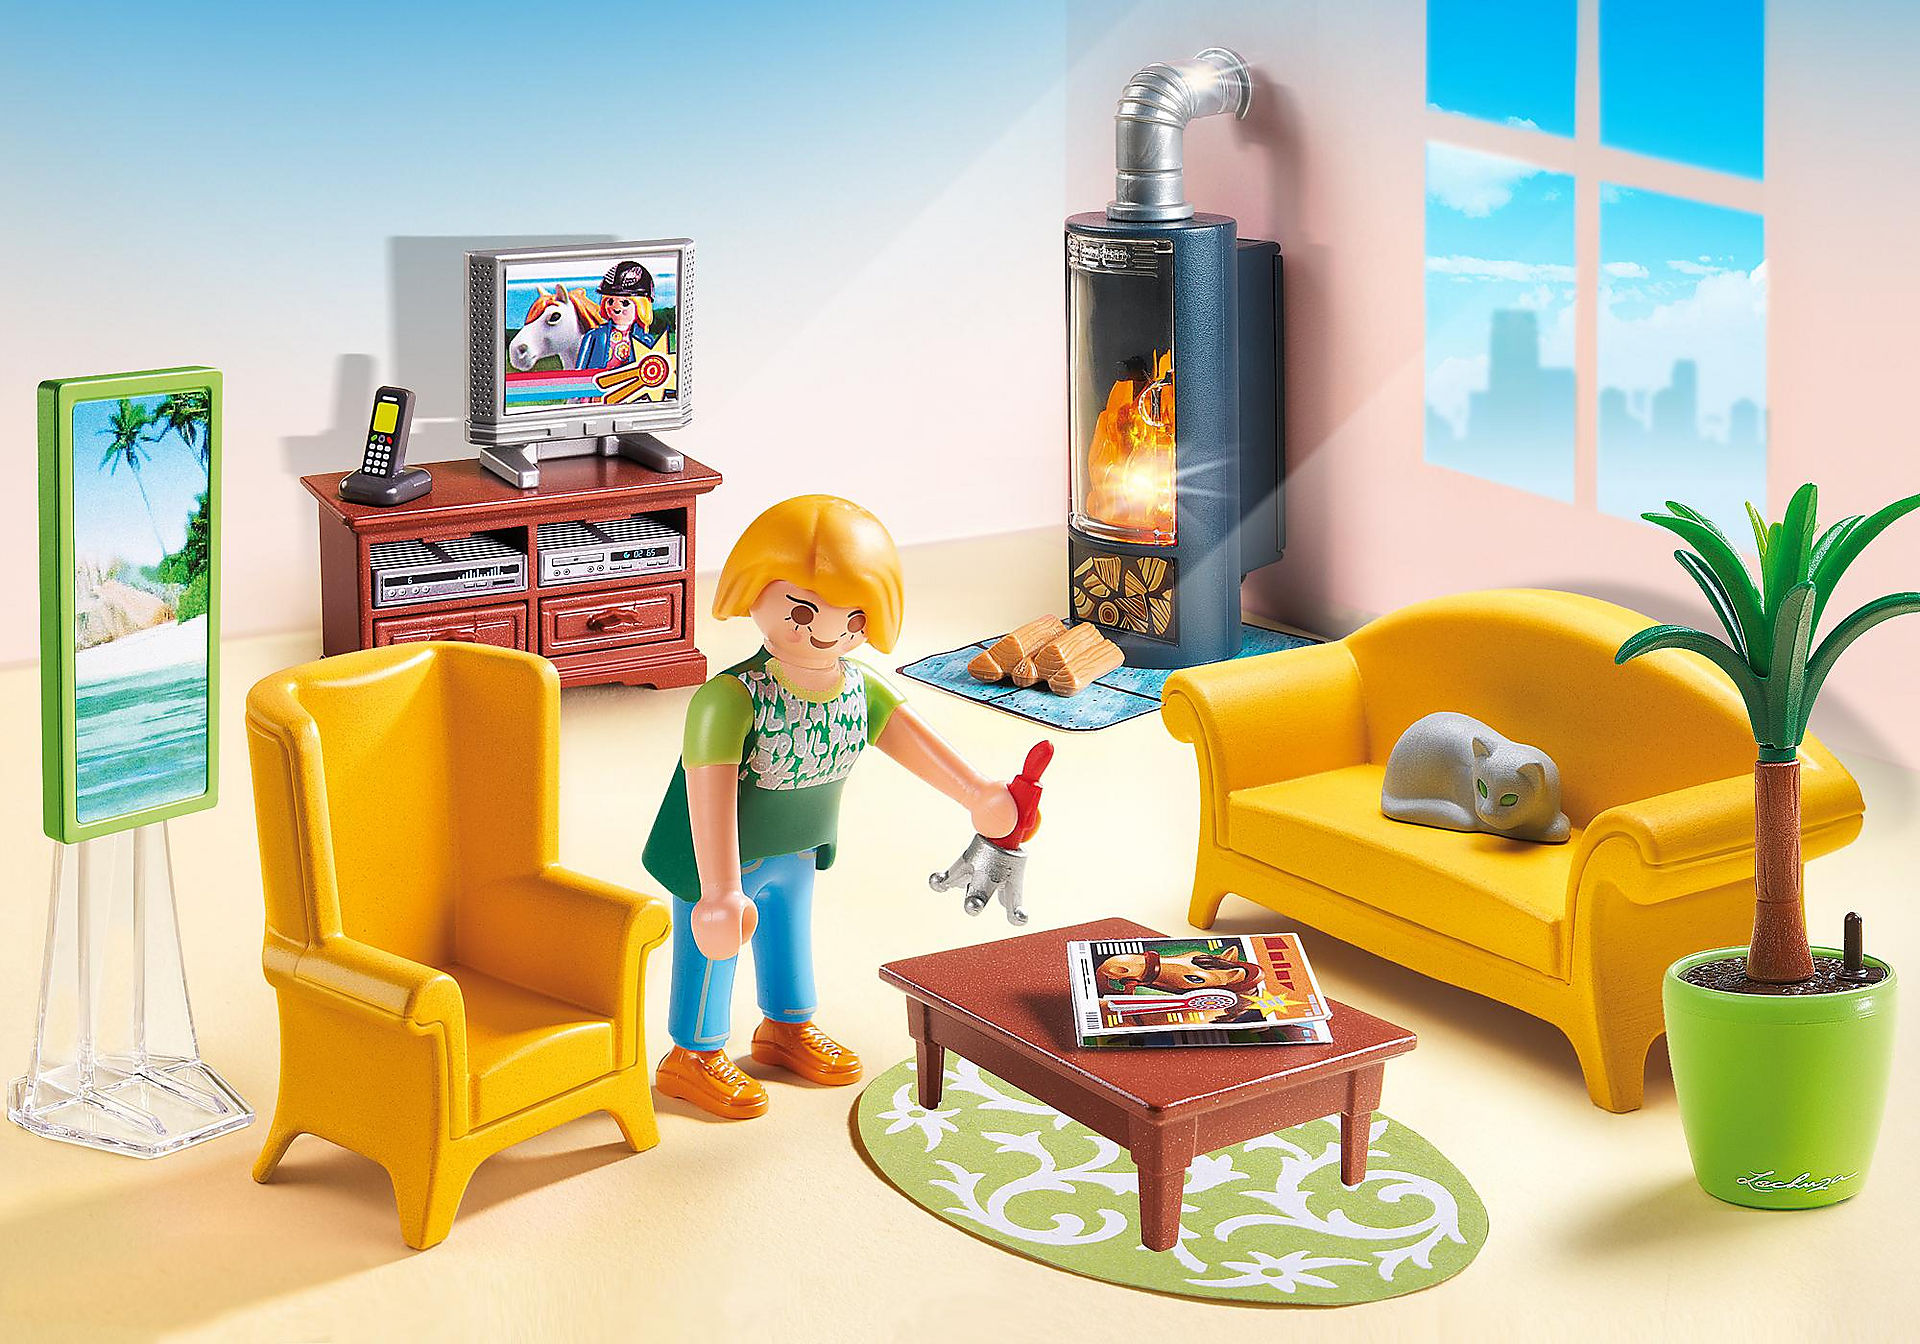 http://media.playmobil.com/i/playmobil/5308_product_detail/Wohnzimmer mit Kaminofen